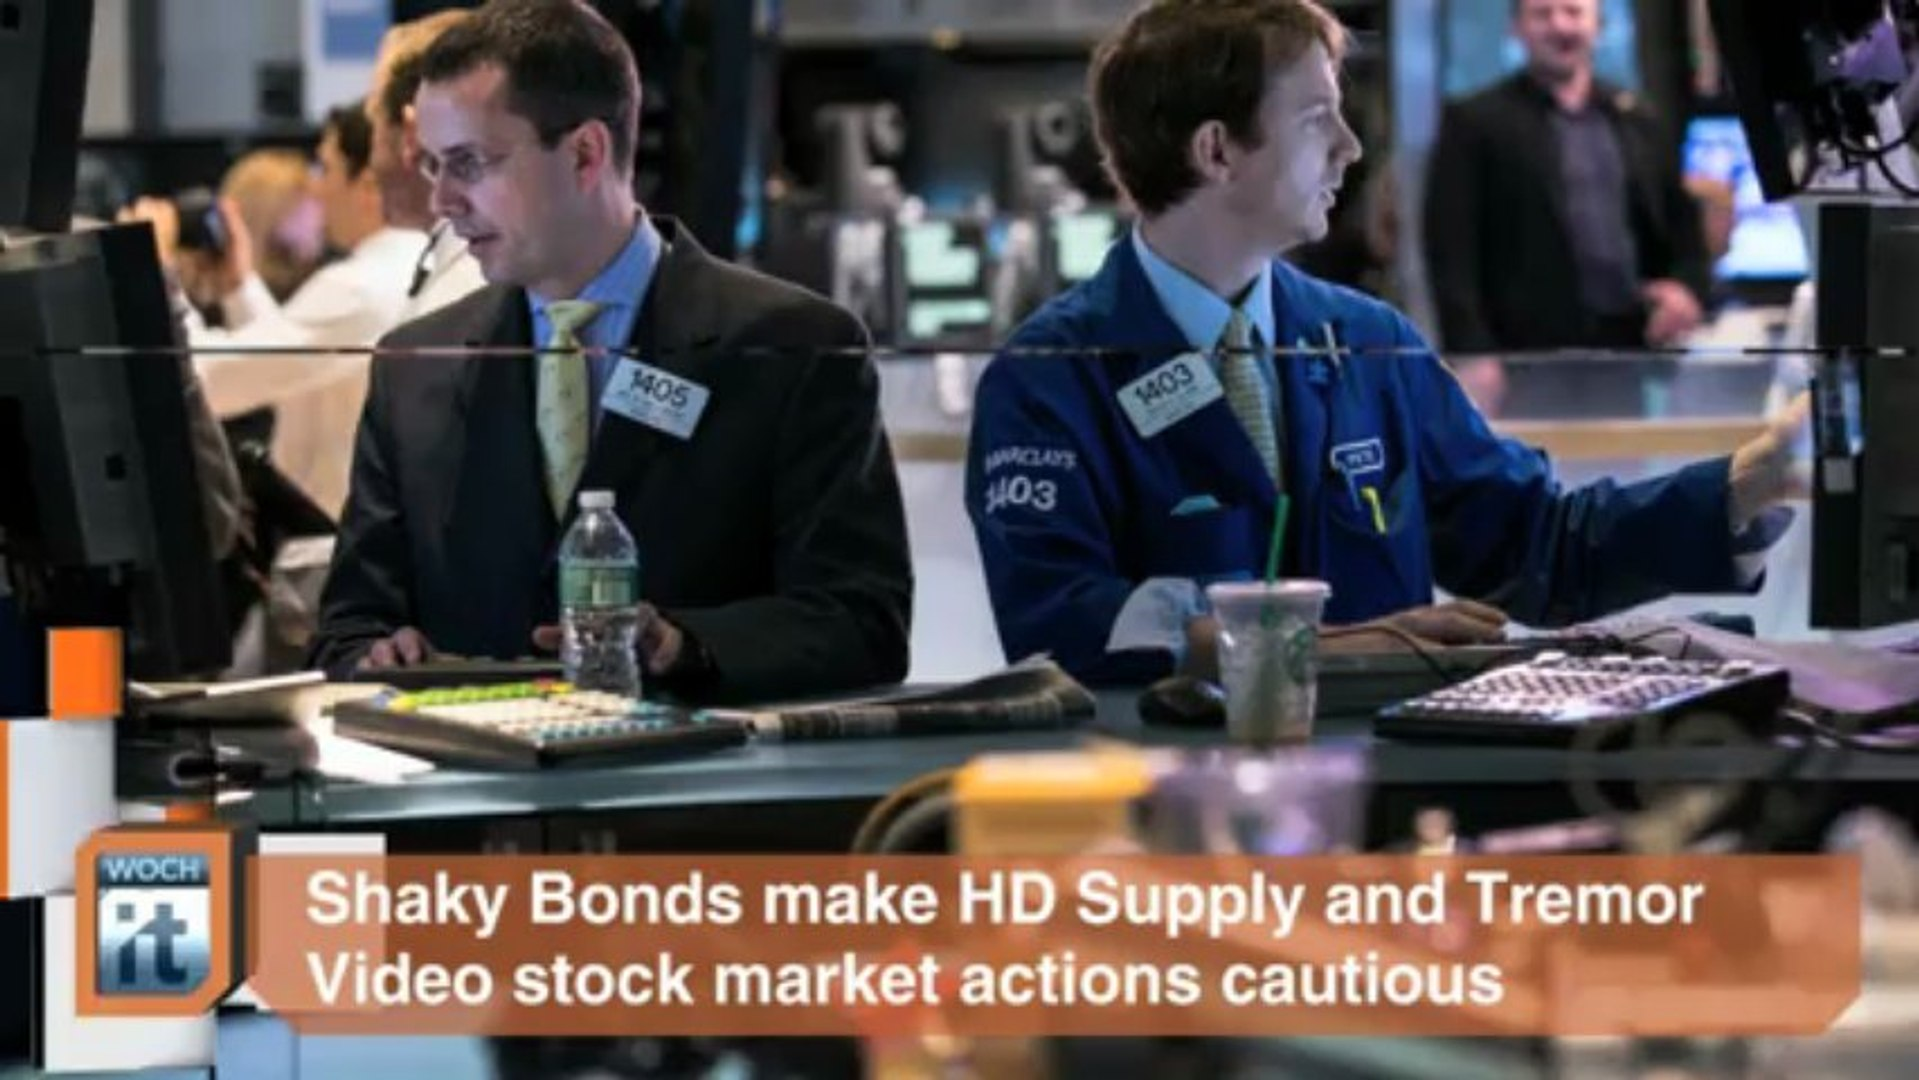 Stock Markets Latest News: Shaky Bonds Make HD Supply and Tremor Video Stock Market Actions Cautious